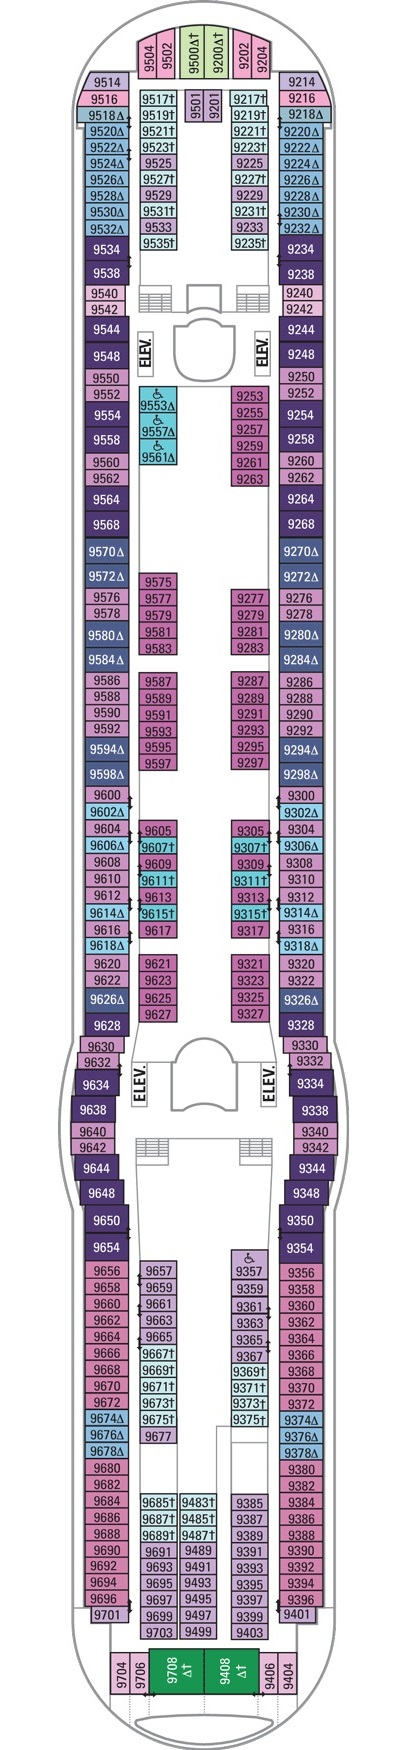 Independence Of The Seas Deck 9 layout